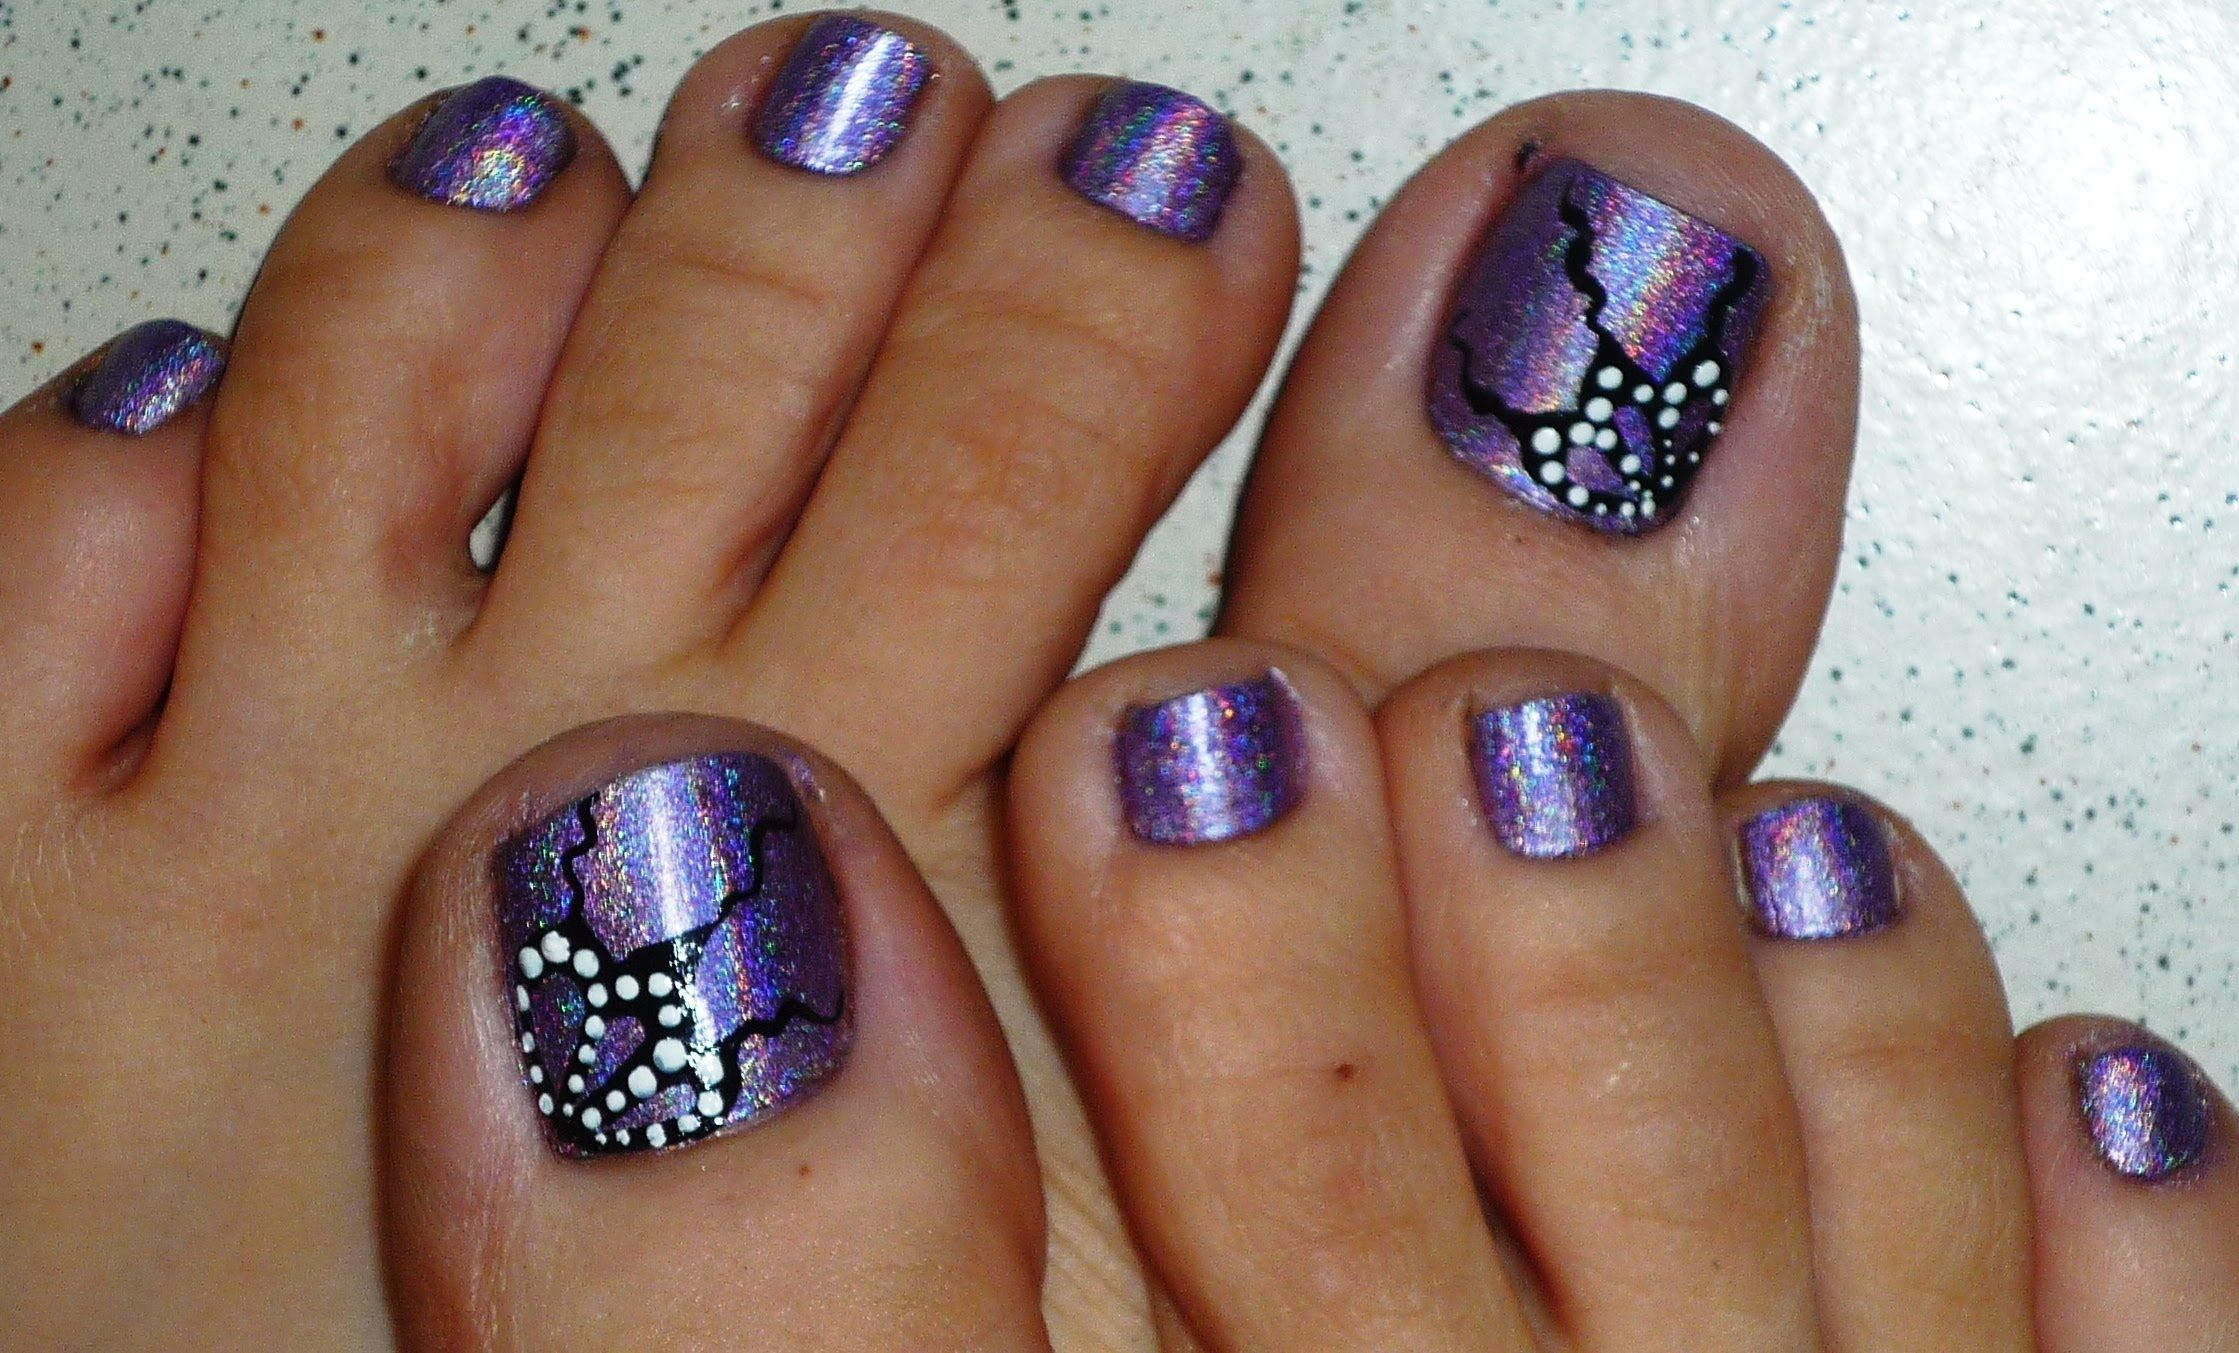 Butterfly Wings Holographic Toe Nail Design | Toe Nail Varnish ...